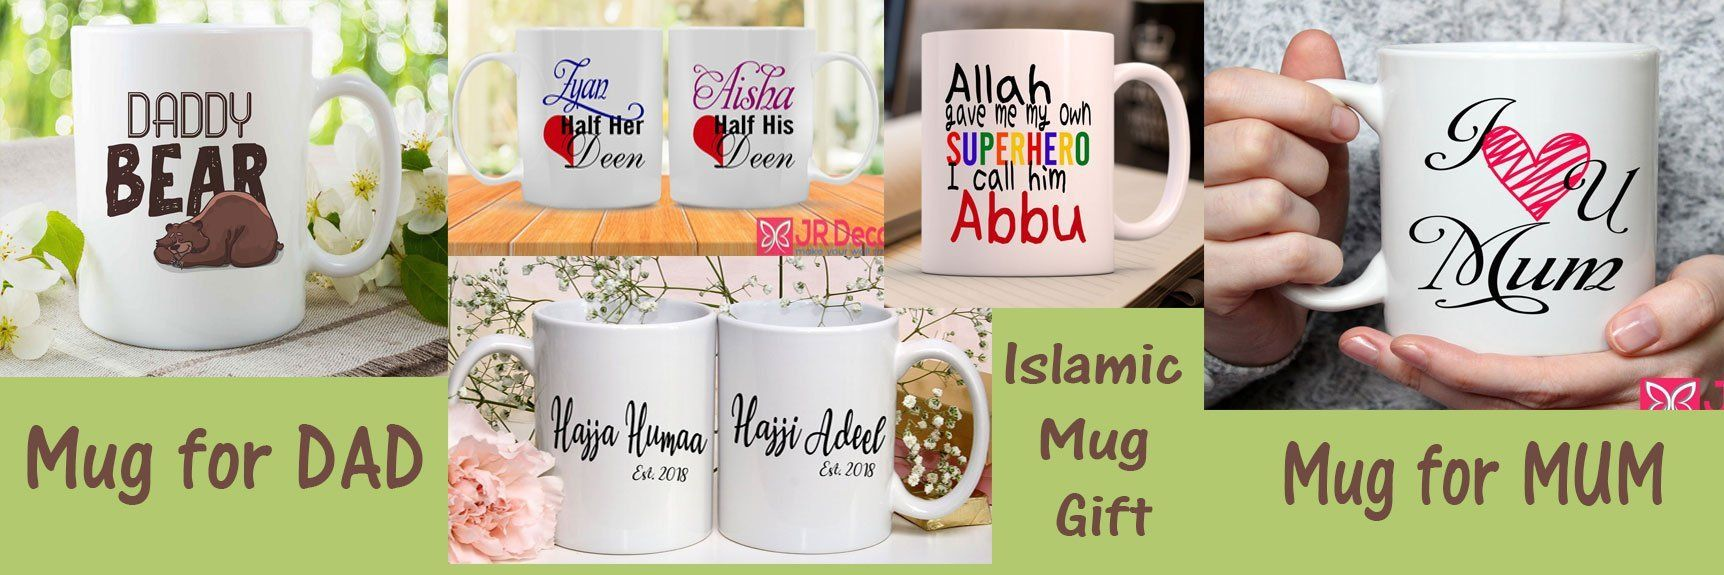 Personalised mugs for DAD, MUM, Islamic Couple gift